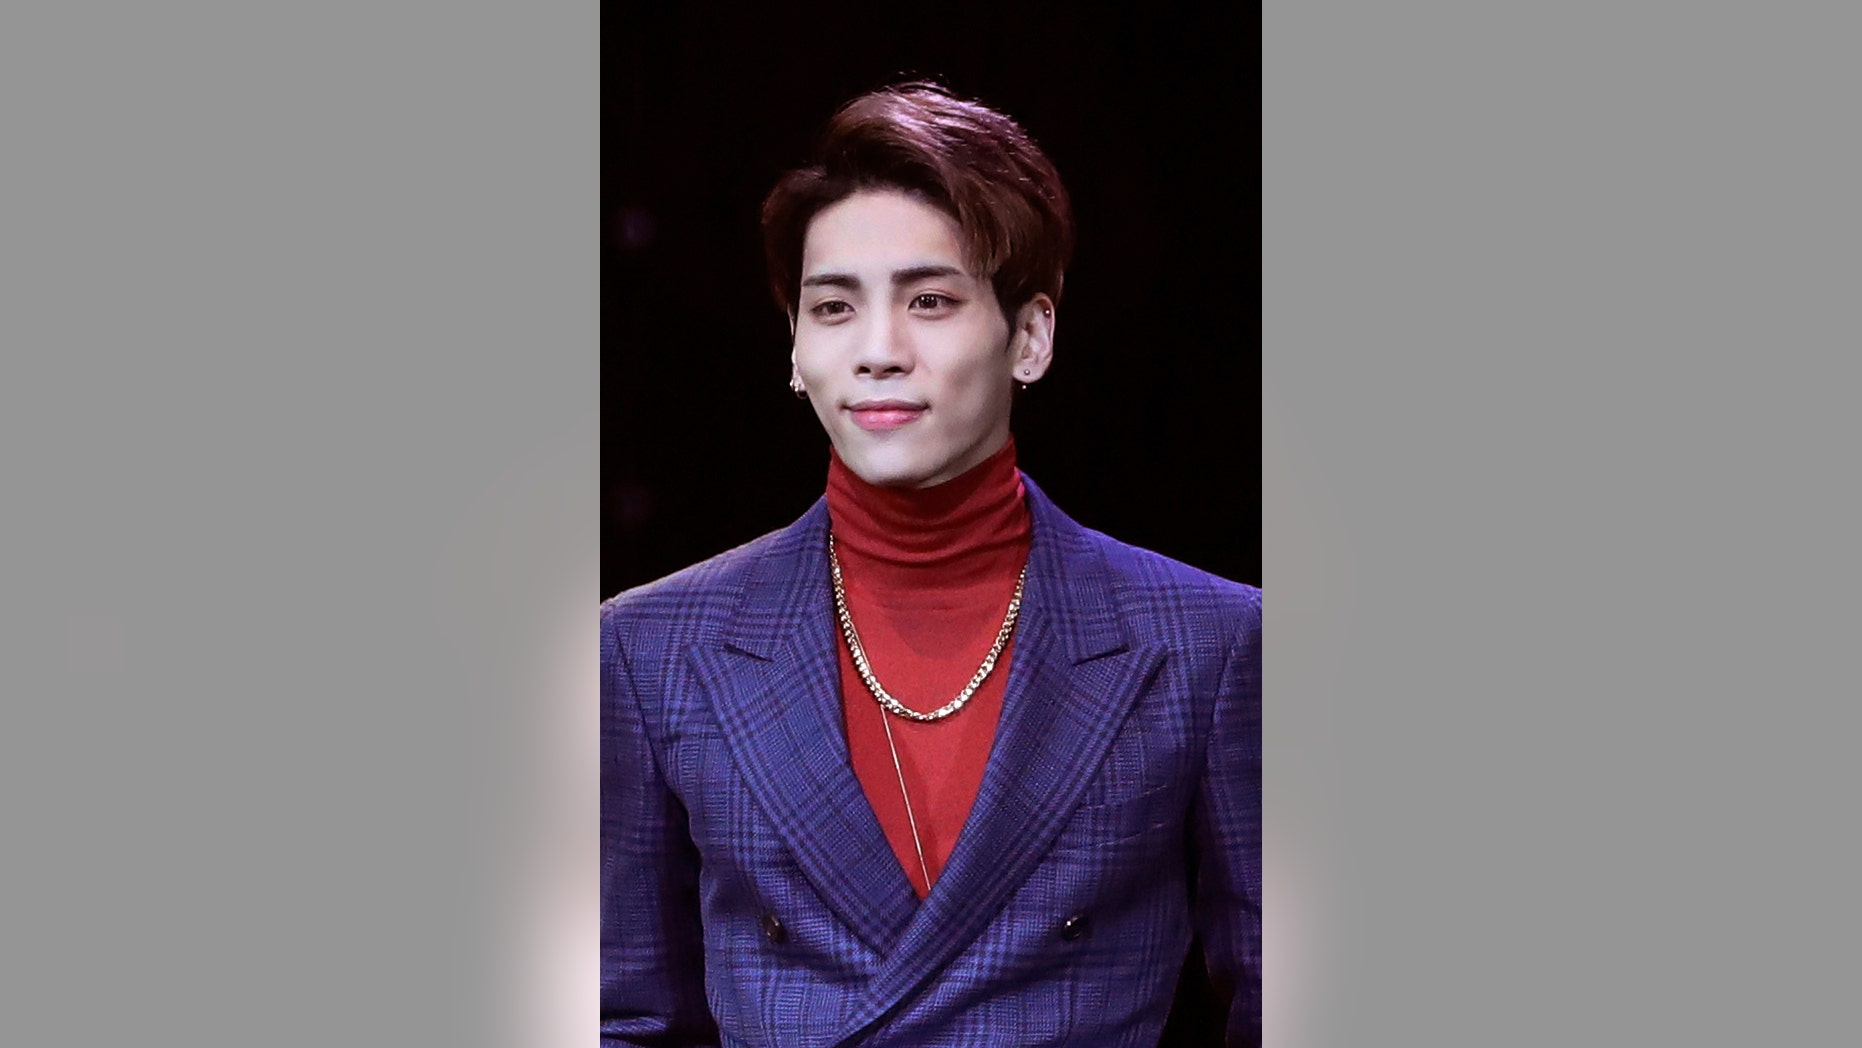 "FILE - In this Oct. 4, 2016, file photo, Kim Jong-hyun, a member of South Korean K-pop group SHINee, poses for the media before a showcase for the group's album ""1 of 1"" in Seoul, South Korea. Kim Jong-hyun, better known by the stage name Jonghyun, was found unconscious at a residence hotel in Seoul and was pronounced dead later at a nearby hospital, Seoul police said Monday Dec. 18, 2017.  (AP Photo/Lee Jin-man, File)"